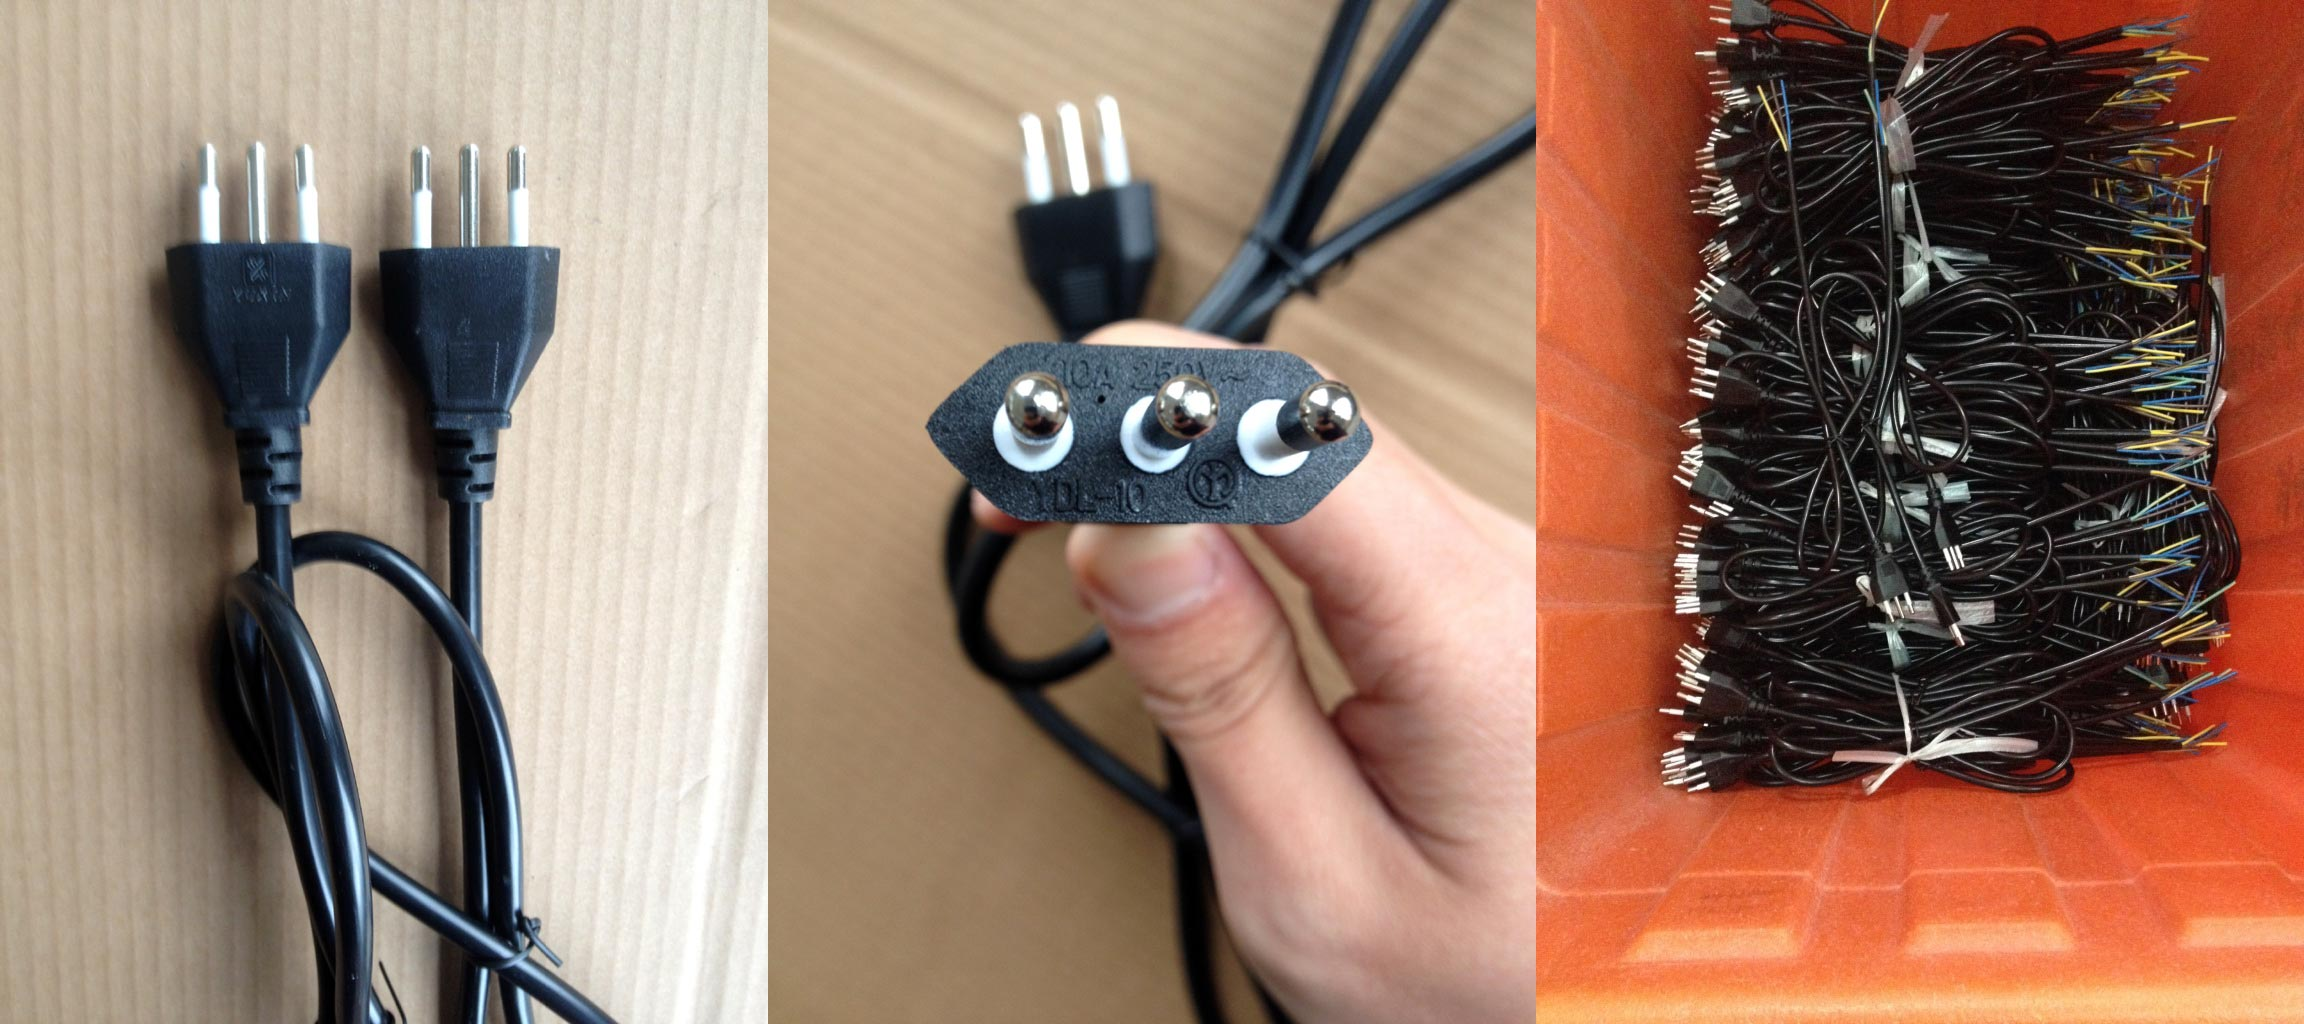 Italy Power Cord 10 Amp 3 Wire Cei 23 50 Standard Type L Plug Ac Wiring South Africa Supply Grounded